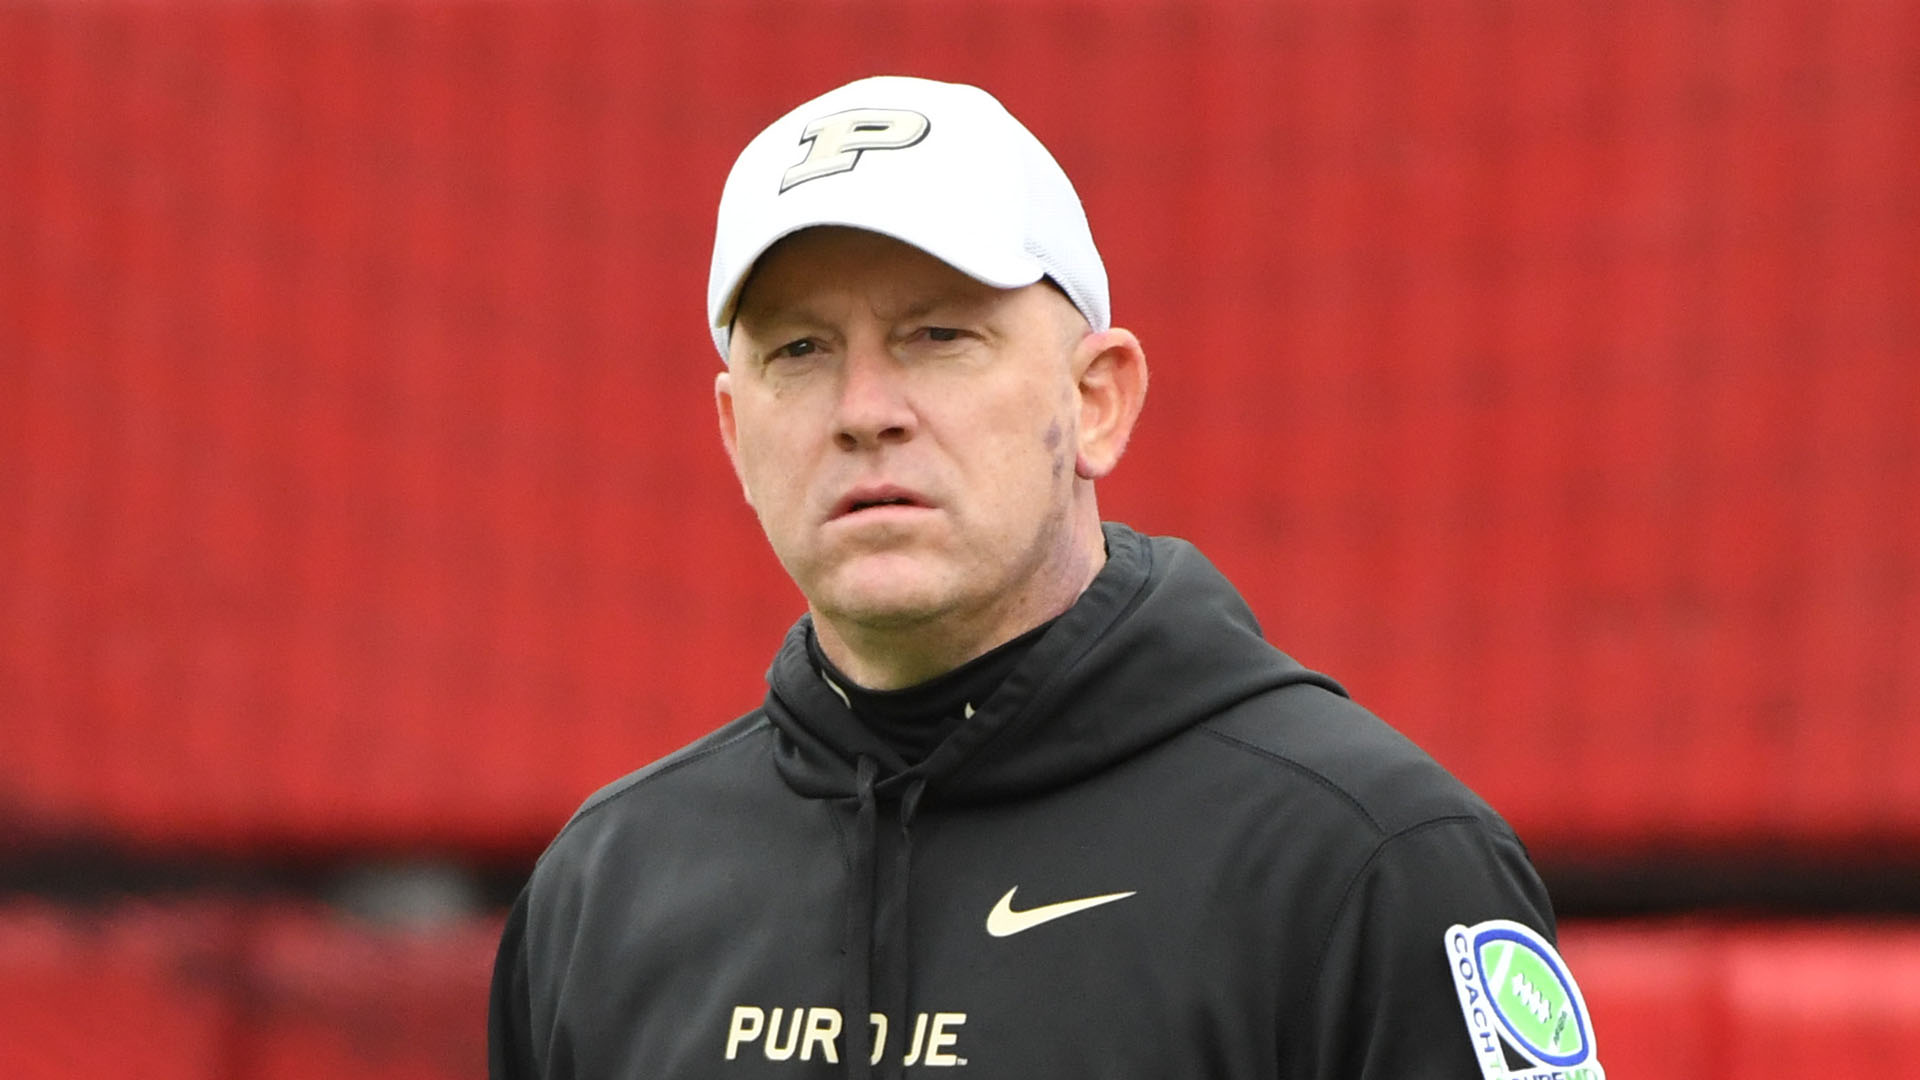 Threat over Brohm's decision cancels classes at his former high school